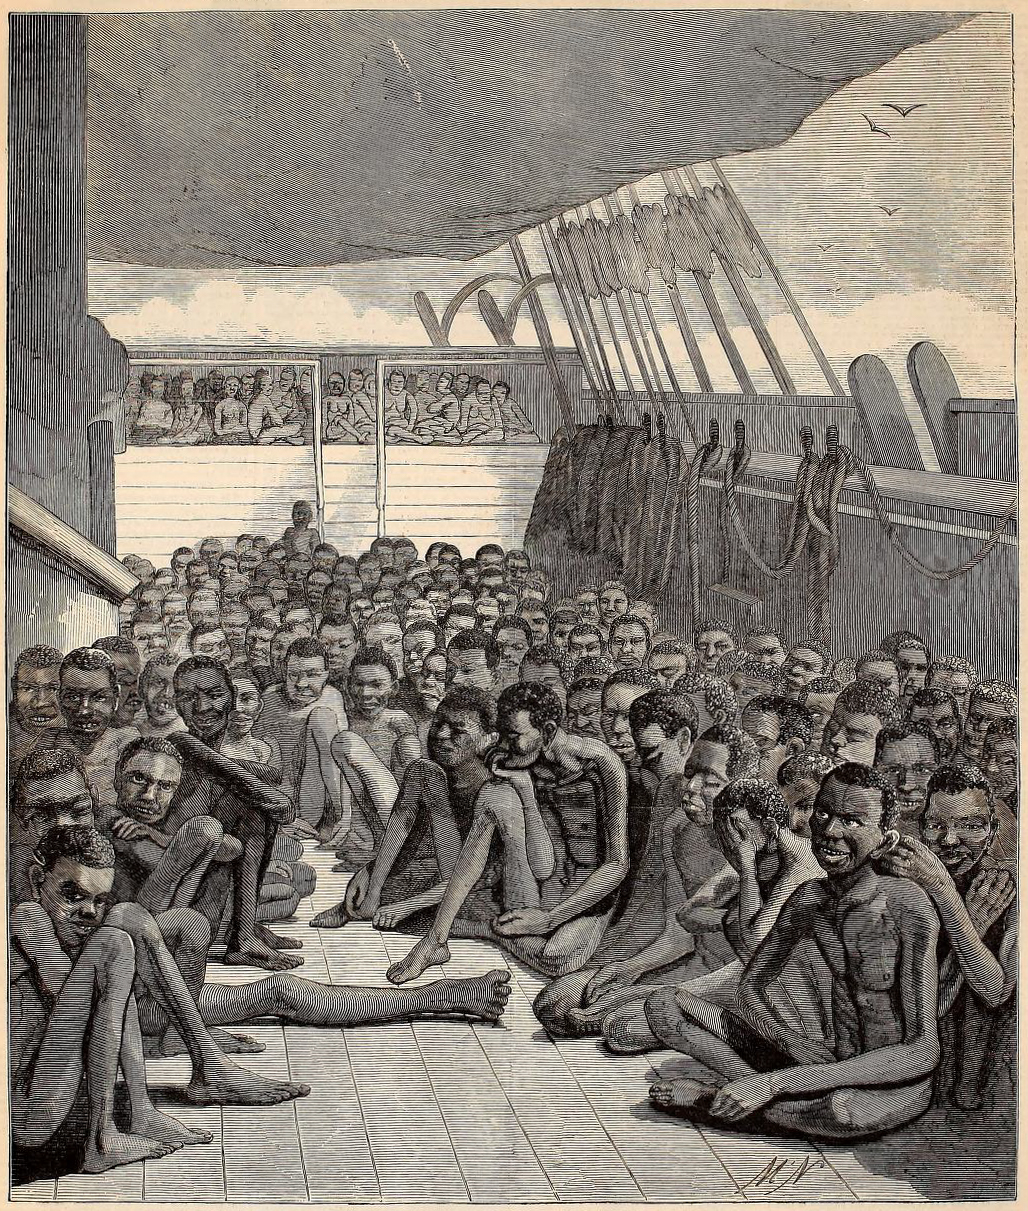 antique print of slaves on shipboard